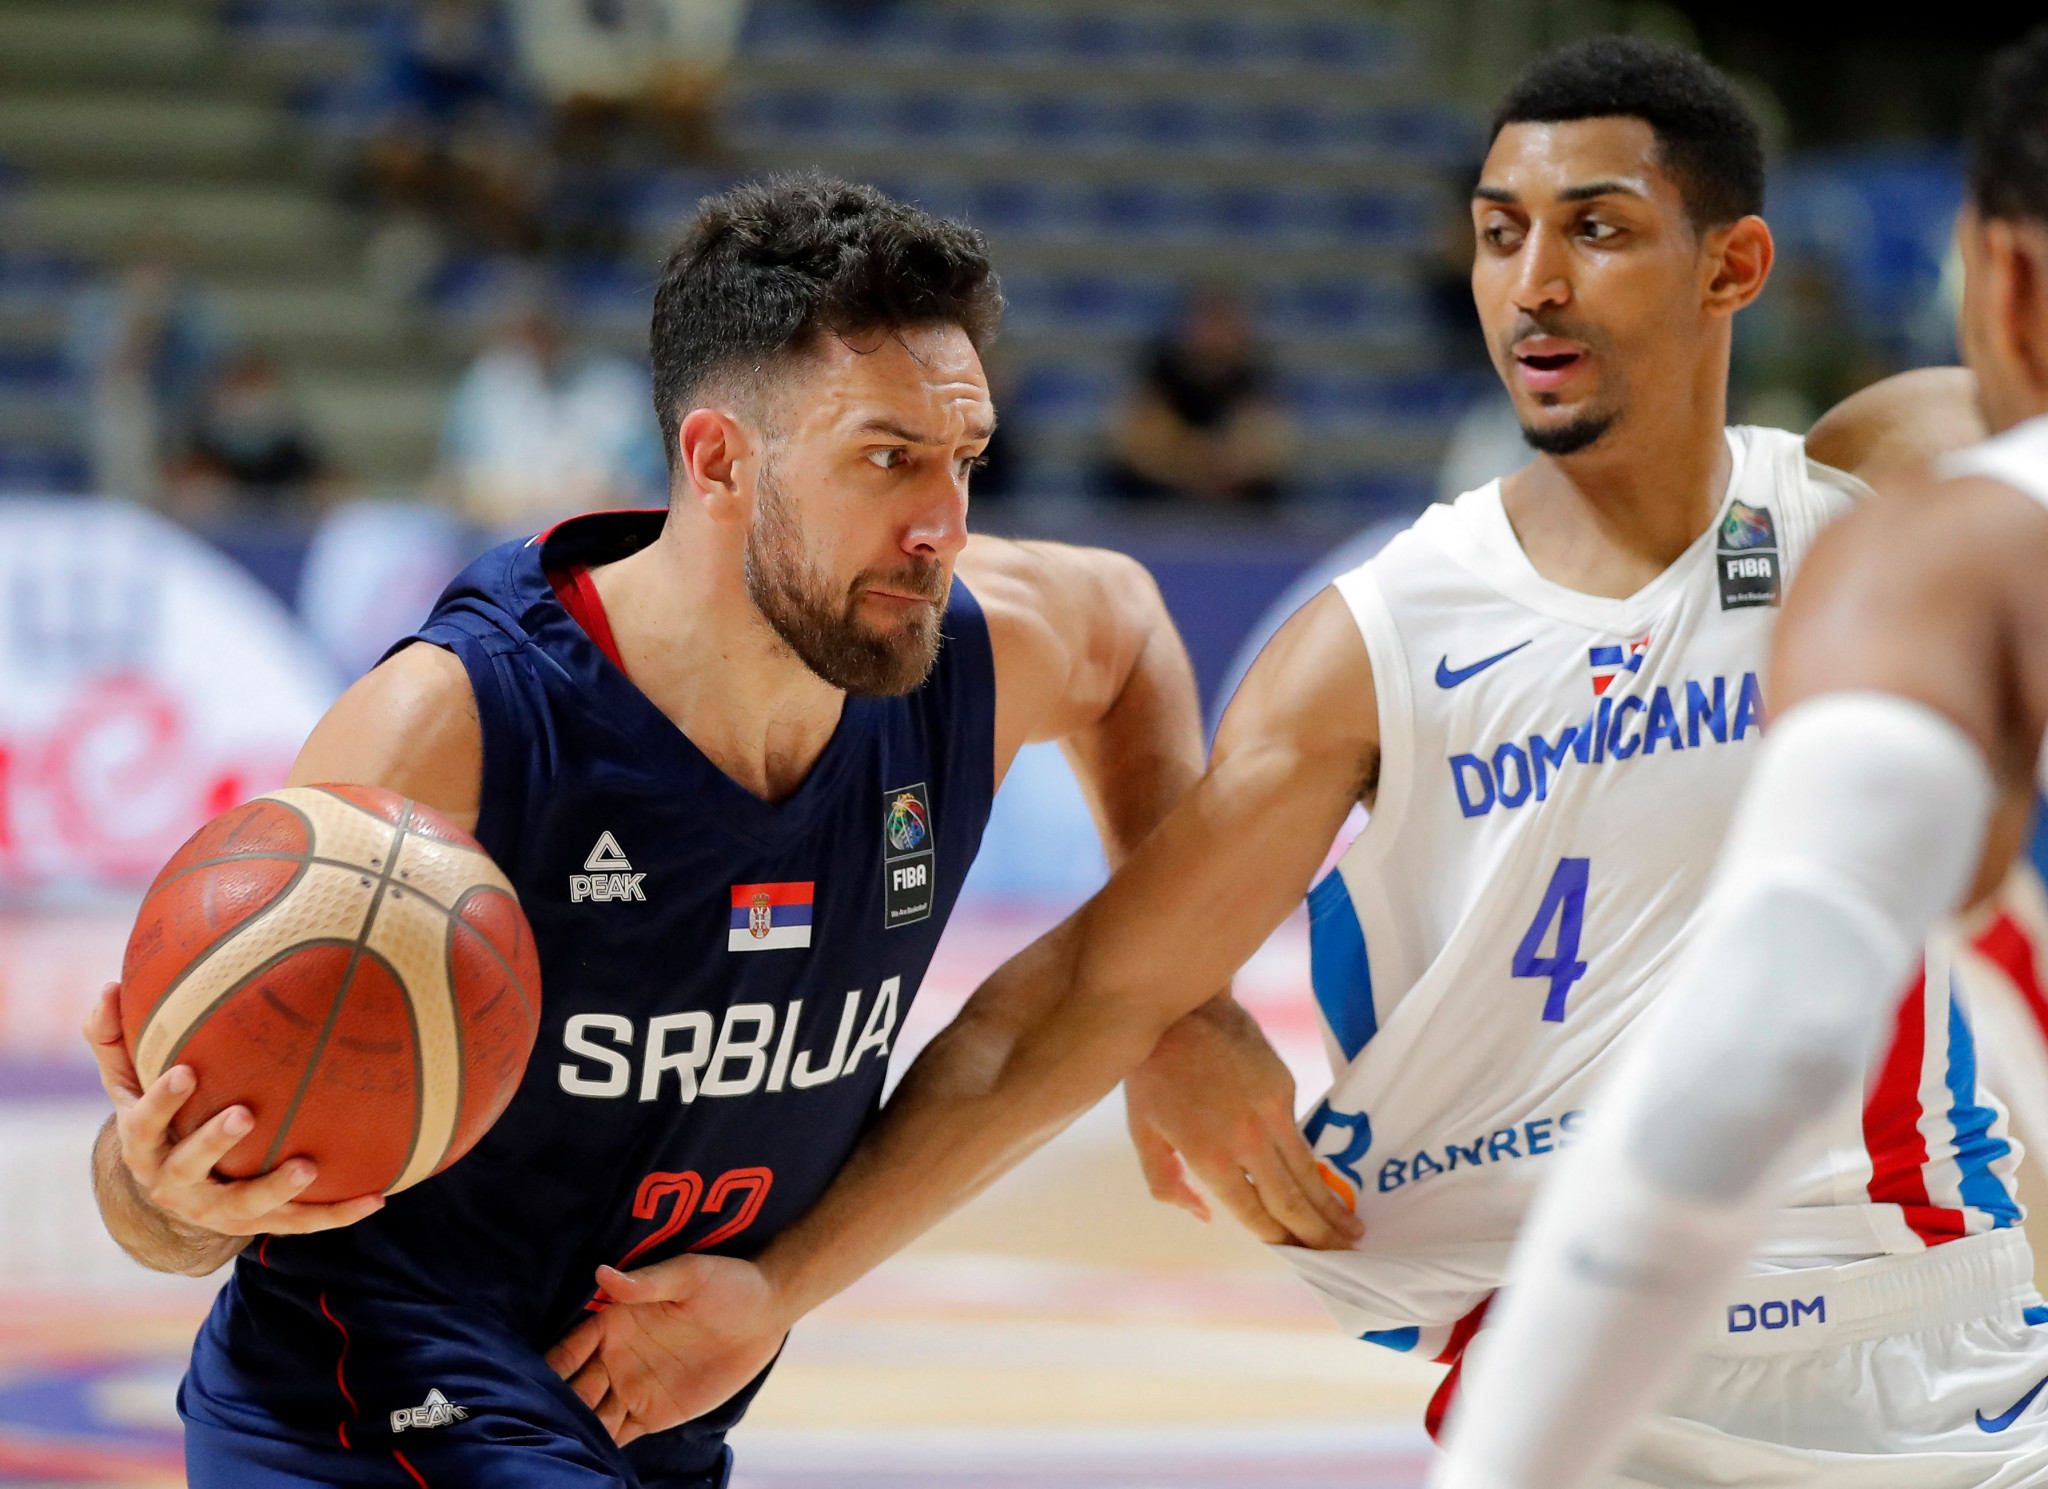 Rio 2016 silver medallists Serbia make winning start to Olympic basketball qualifier